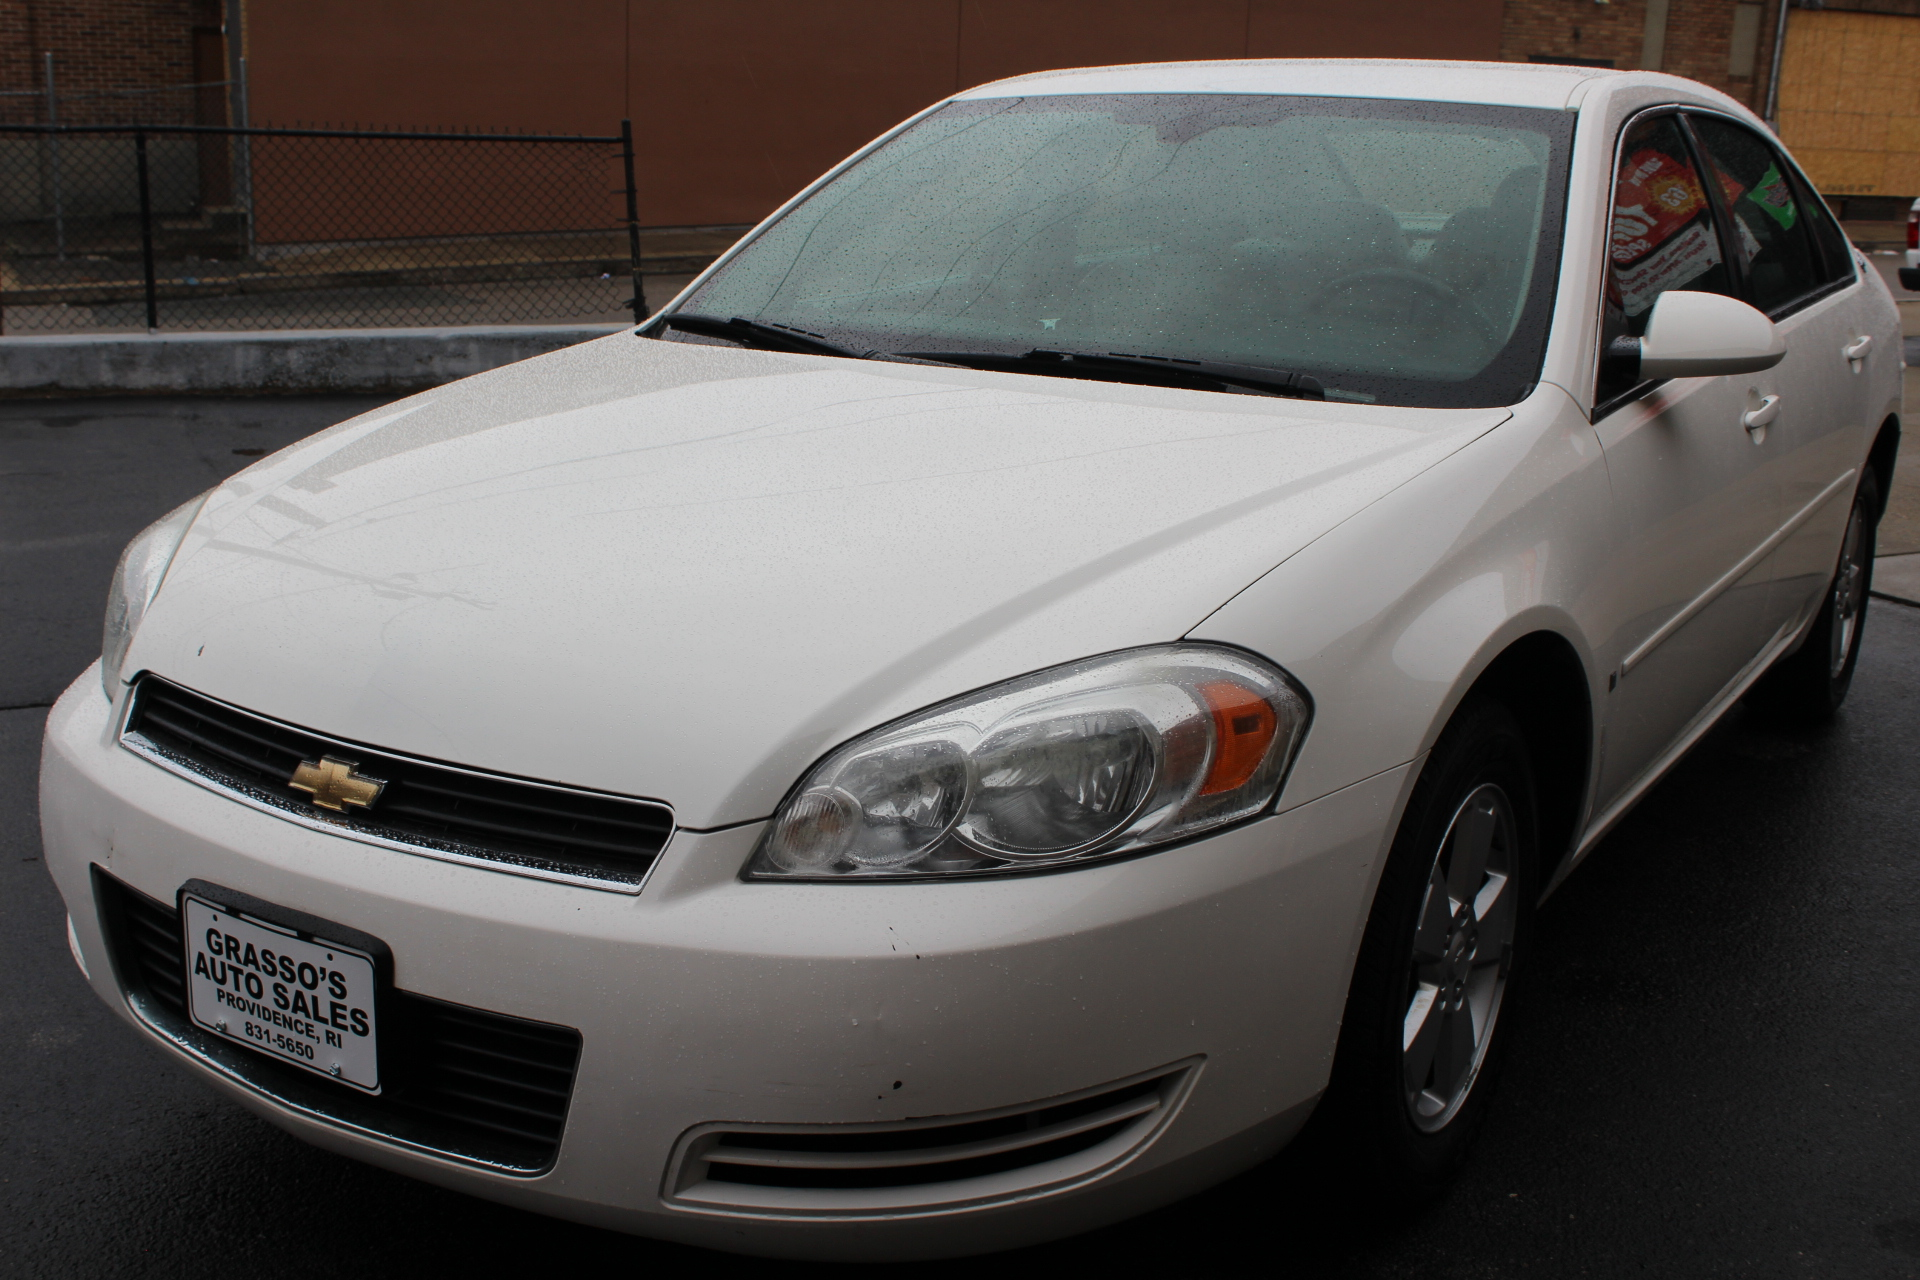 2006 Chevrolet Impala 4dr Sdn LT 35L TWO OWNERS  NO ACCIDENTS  NON SMOKER  COMPLETELY SERVICED